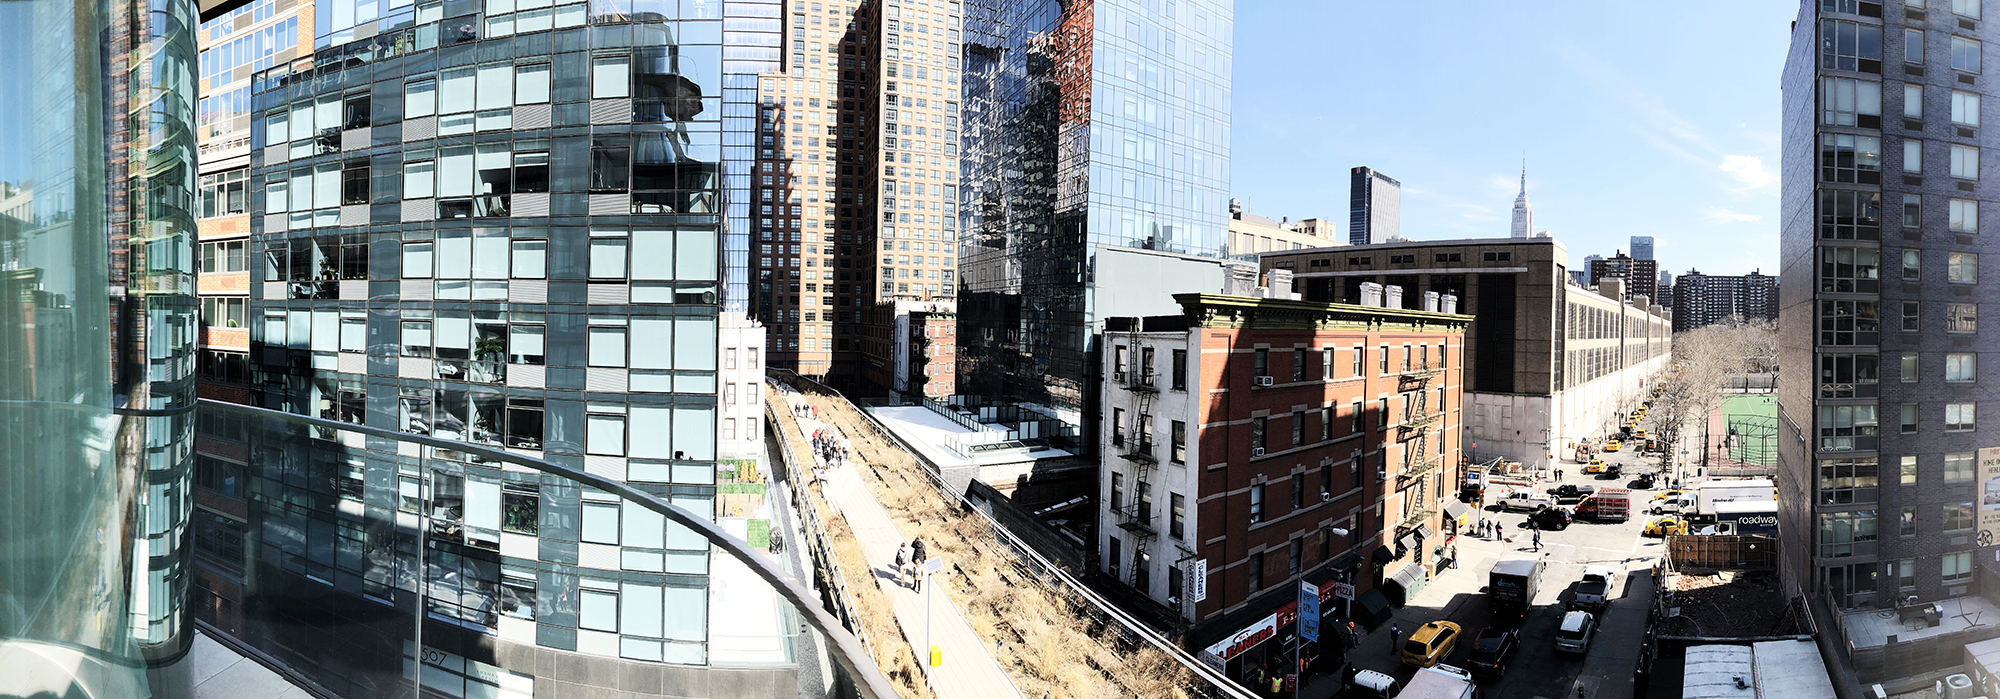 Zaha Hadid at 520 West 28th Street - View From a Balcony